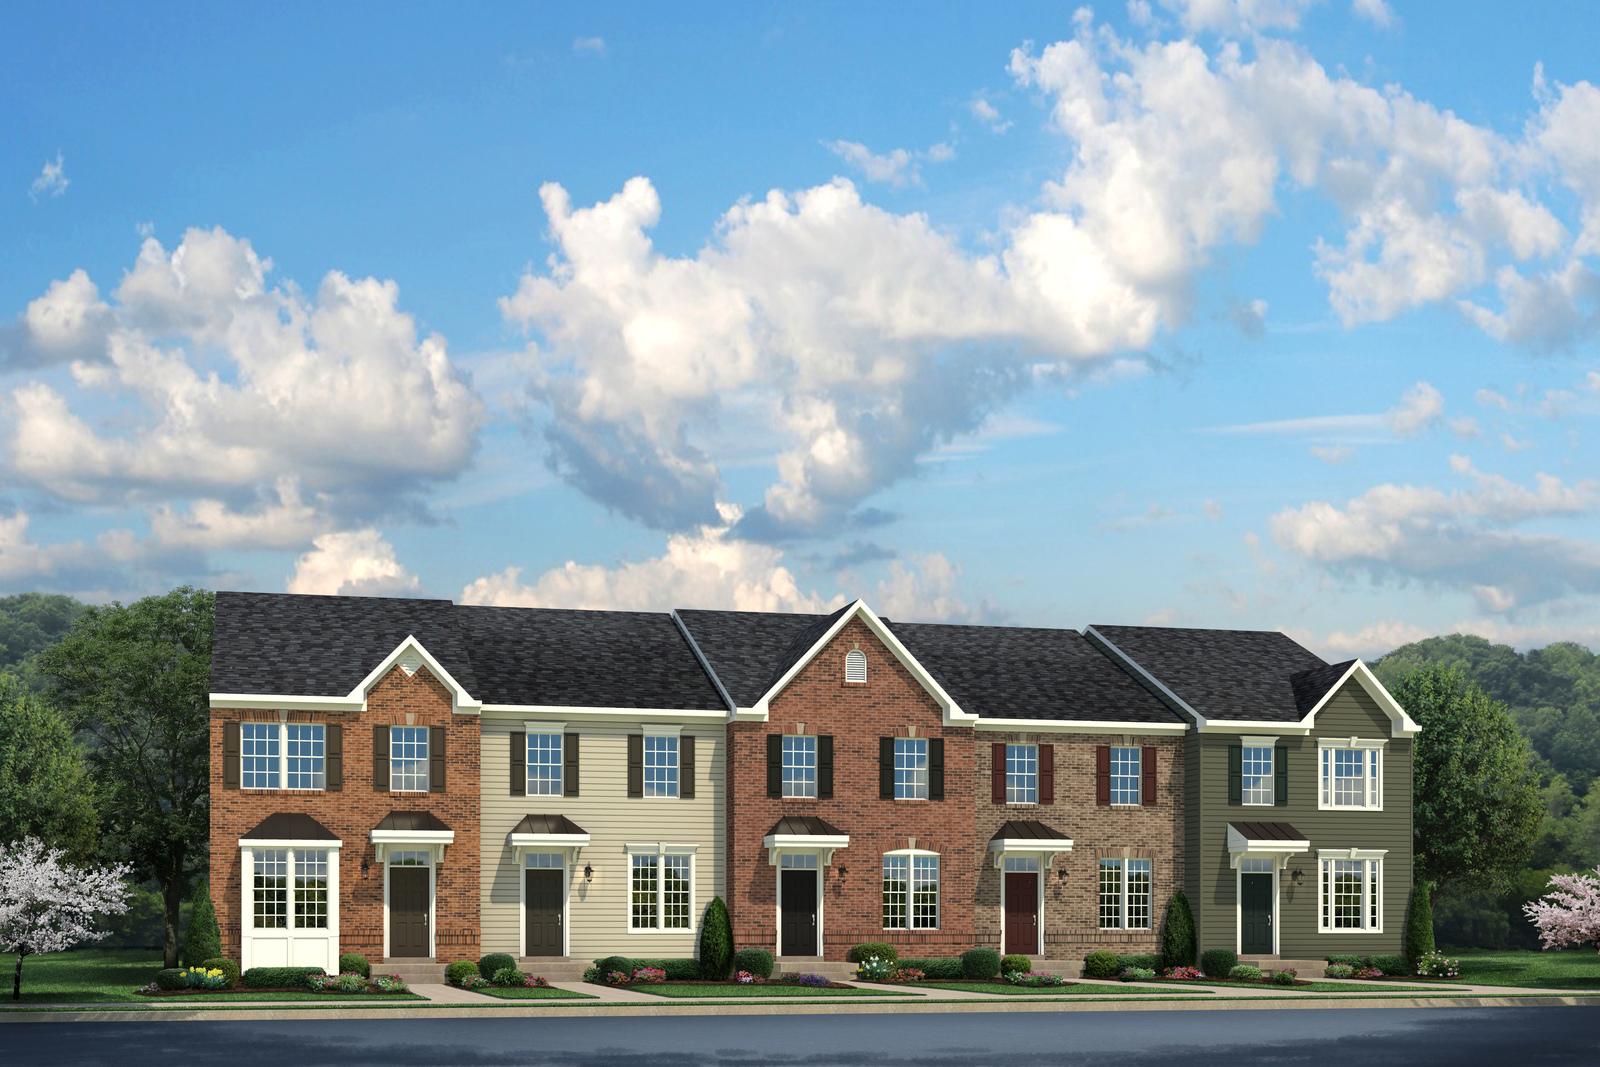 Beethoven 2 Level at Village at Candle Station Townhomes